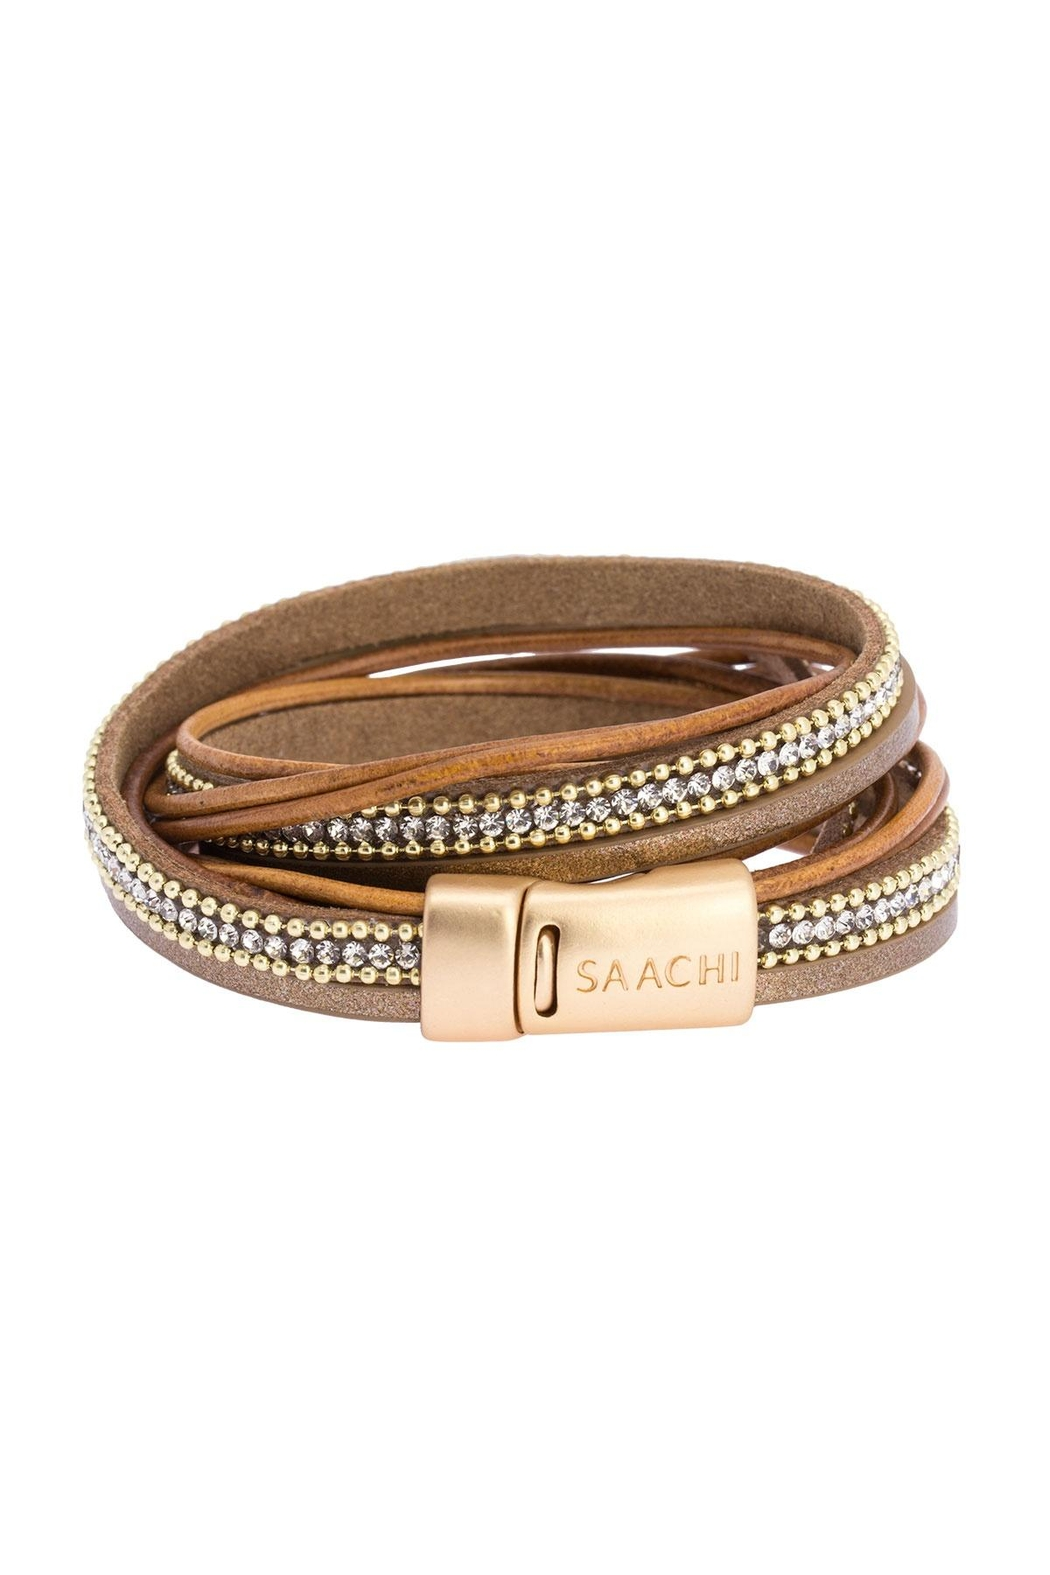 Saachi Flaunt Double Wrap Leather Bracelet - Back Cropped Image